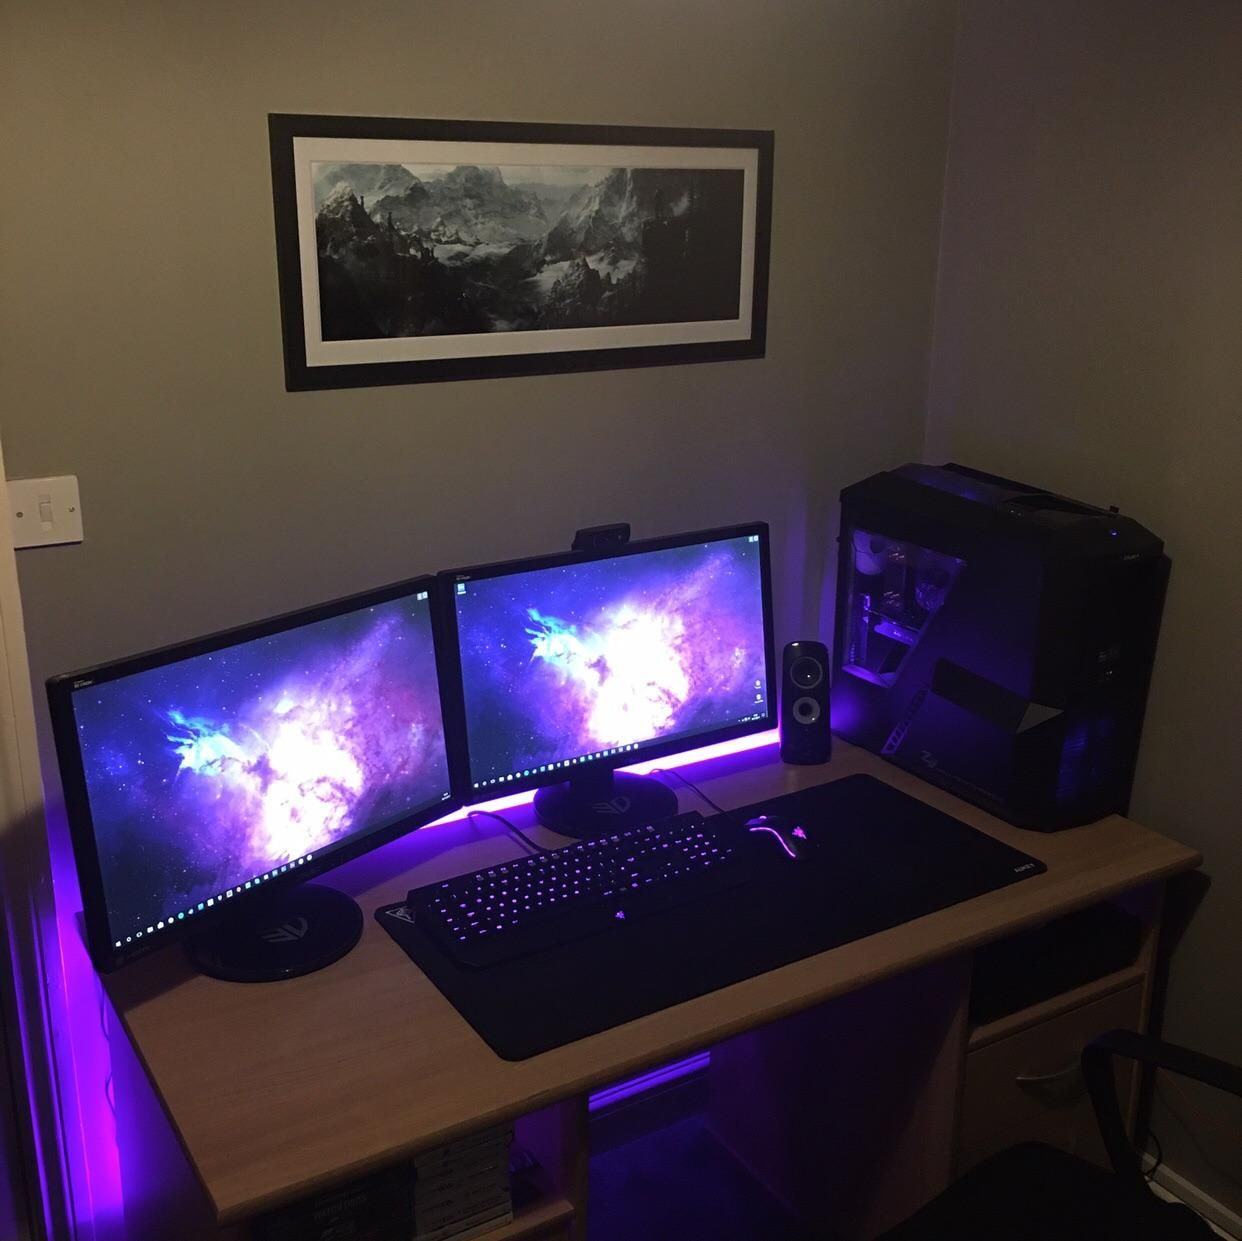 My first battlestation! Id love to hear suggestions on